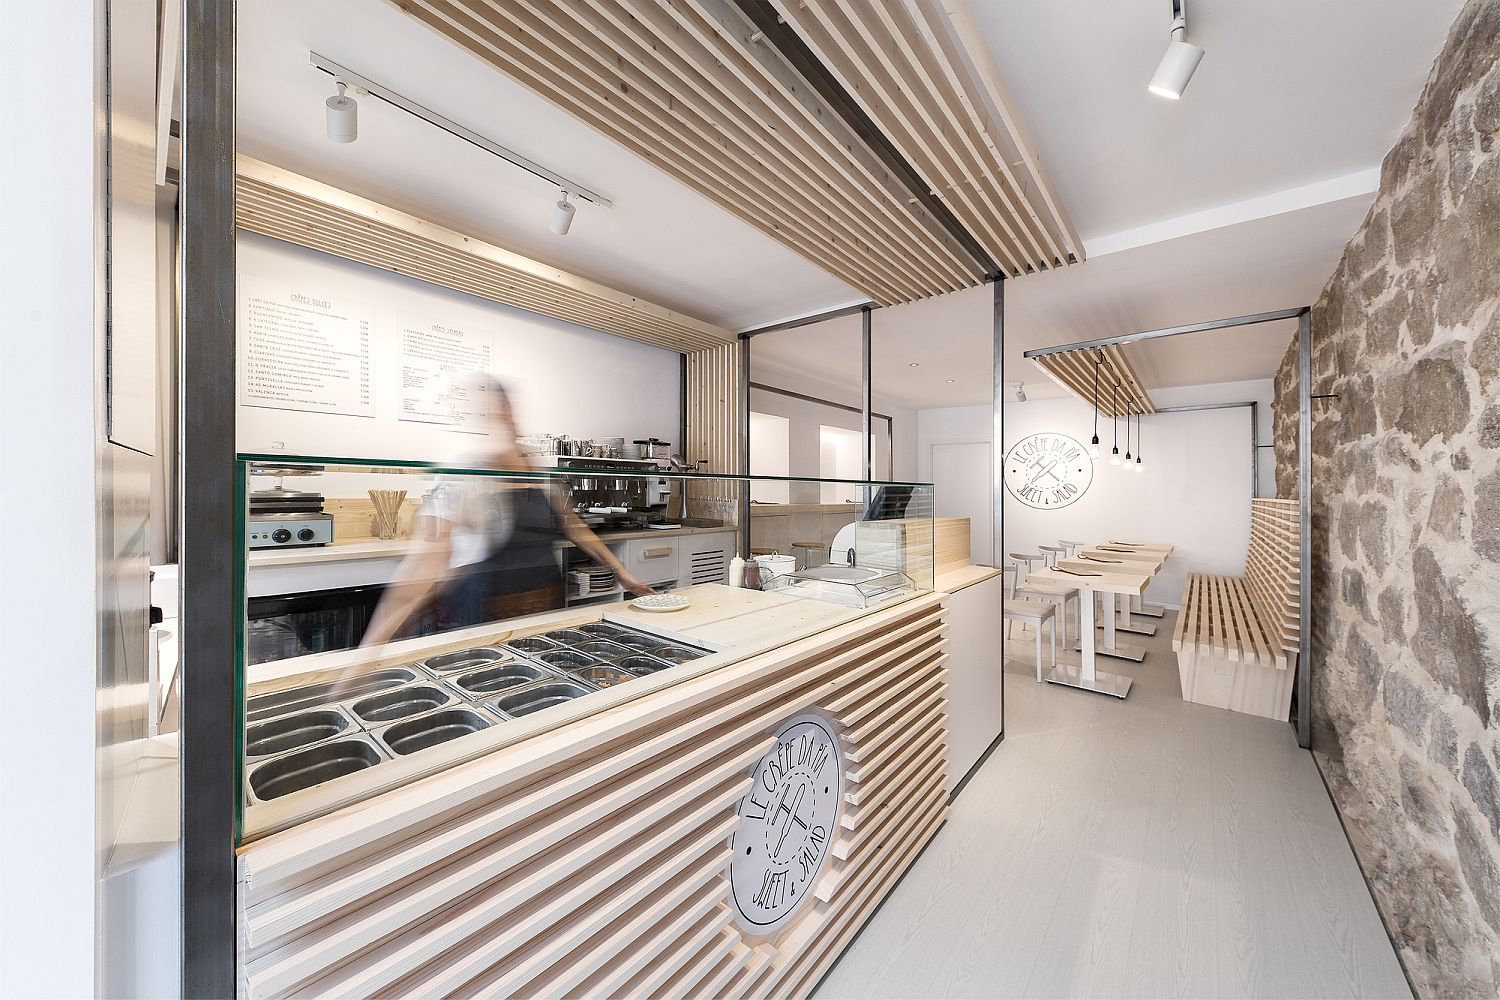 Contemporary eatout in Galicia, Spain with a classic modern style